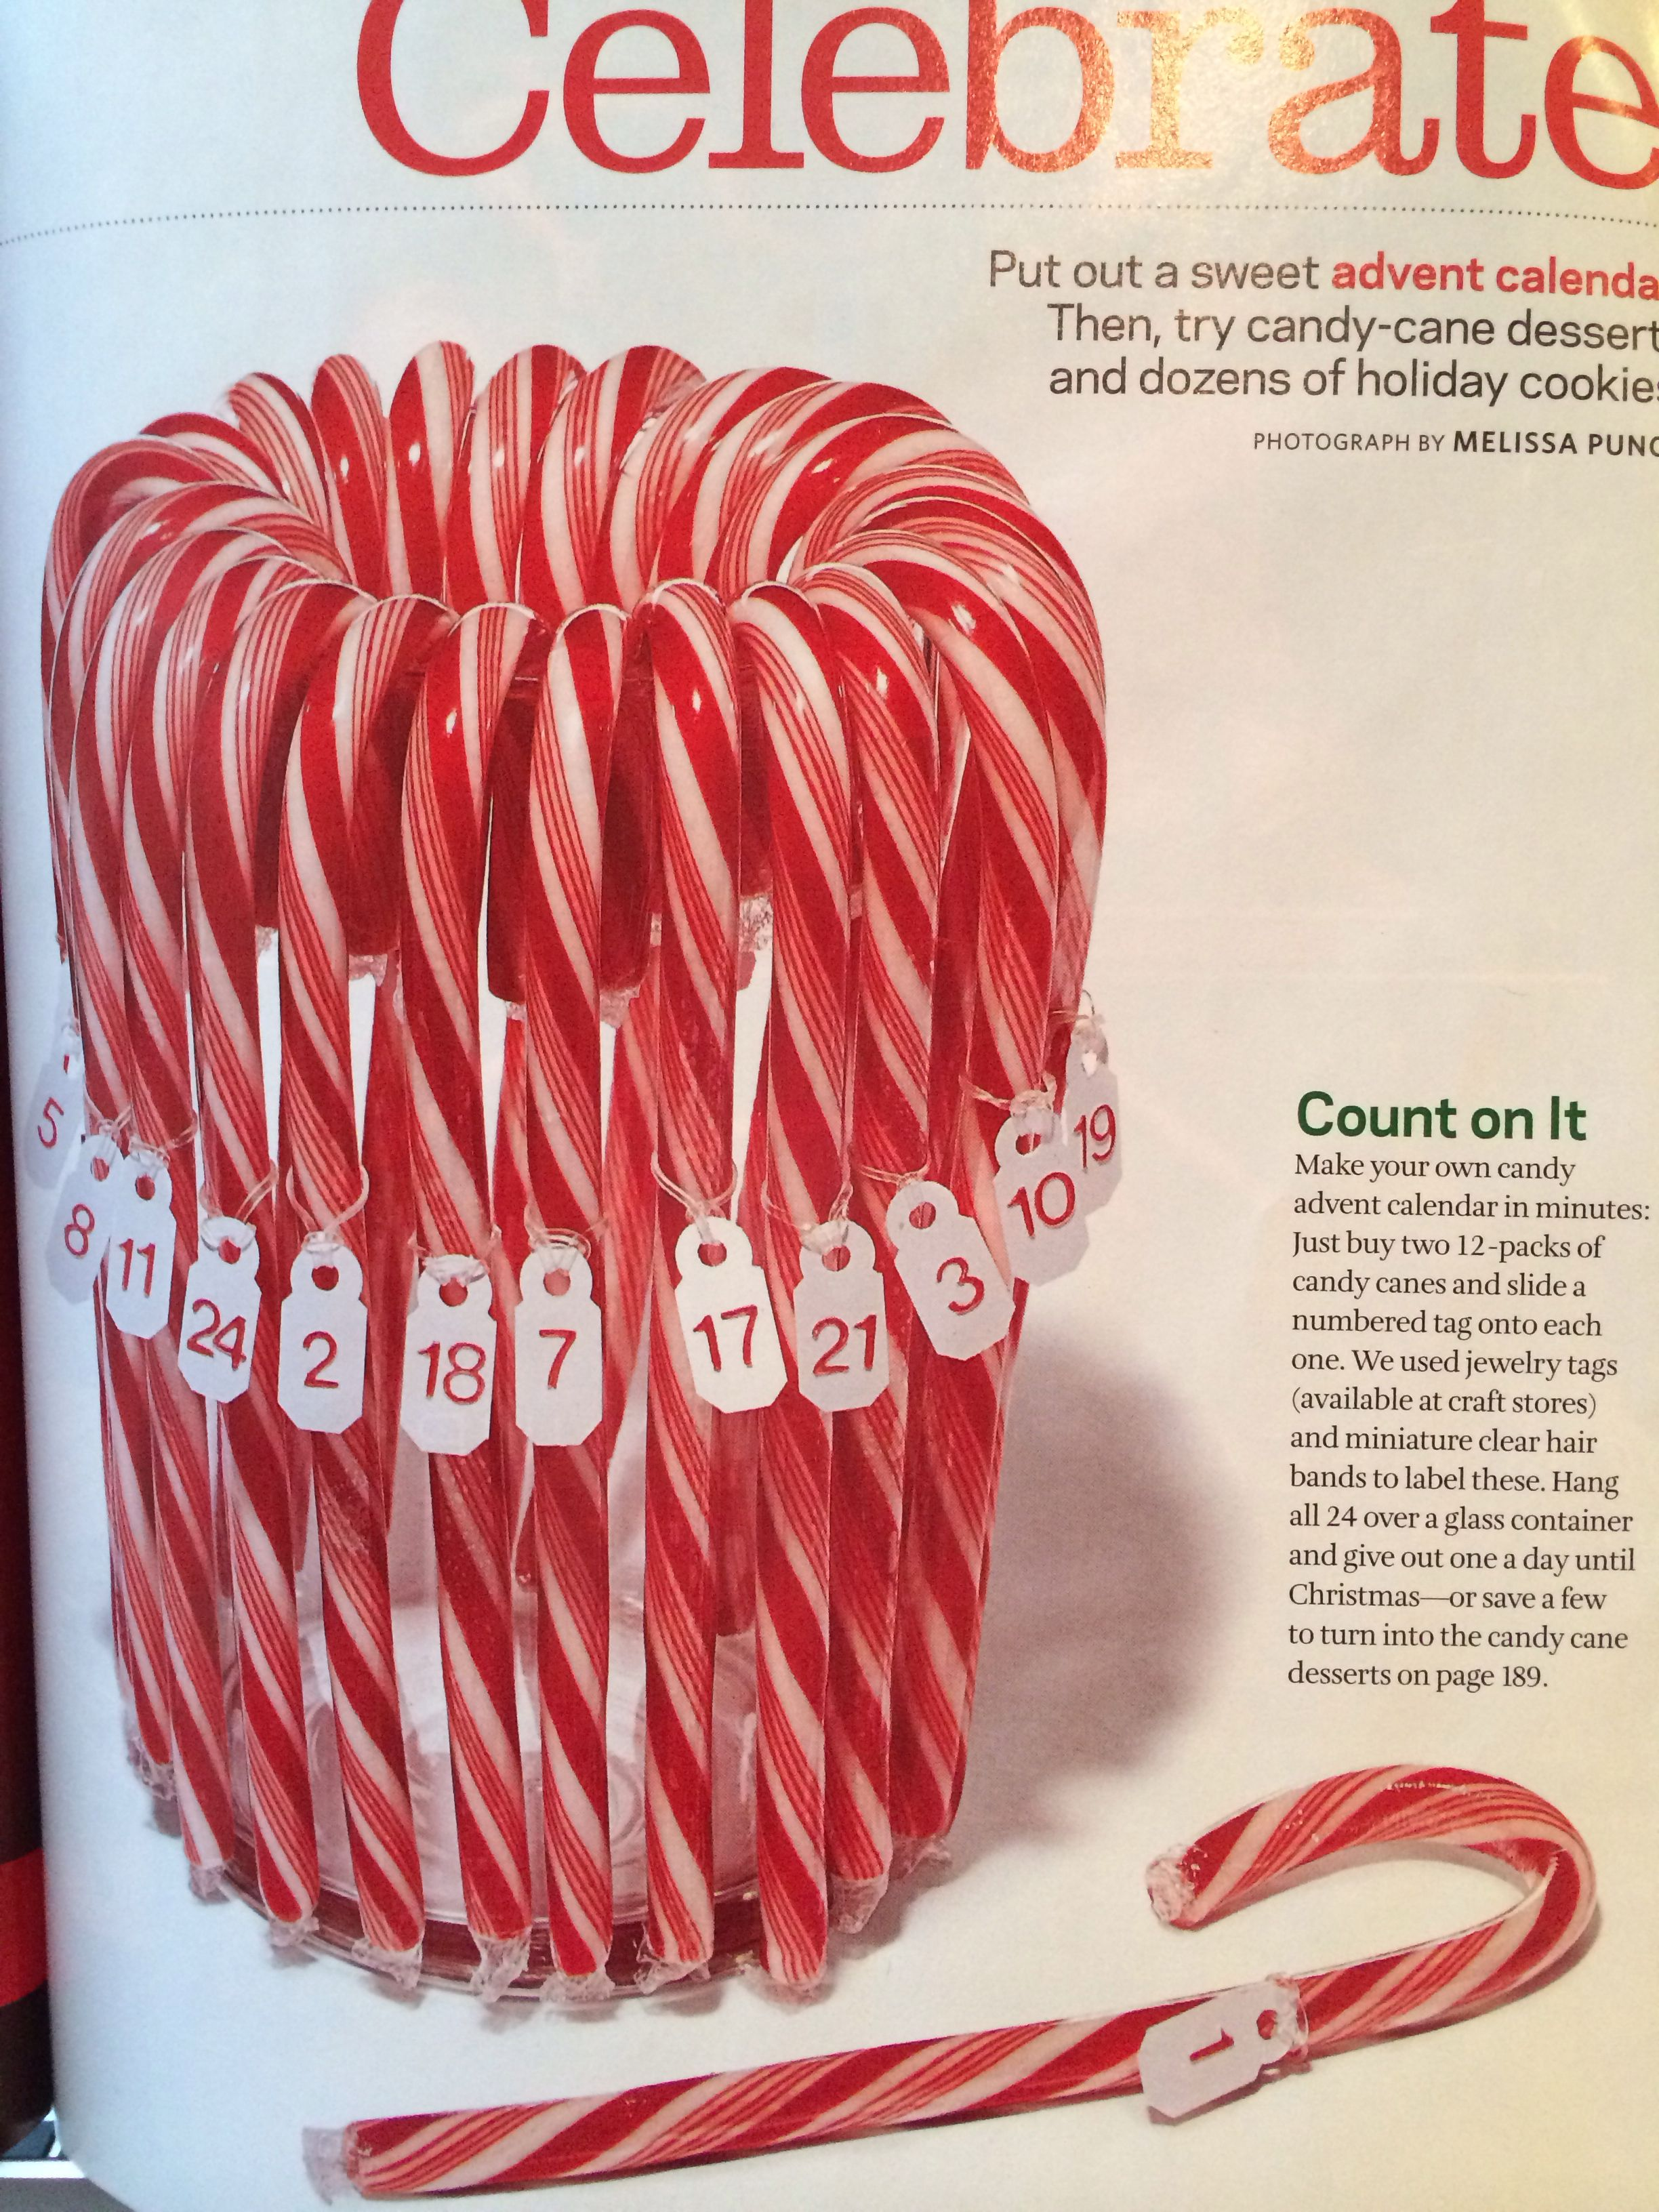 Candy Cane Advent Calendar From The December Edition Of The